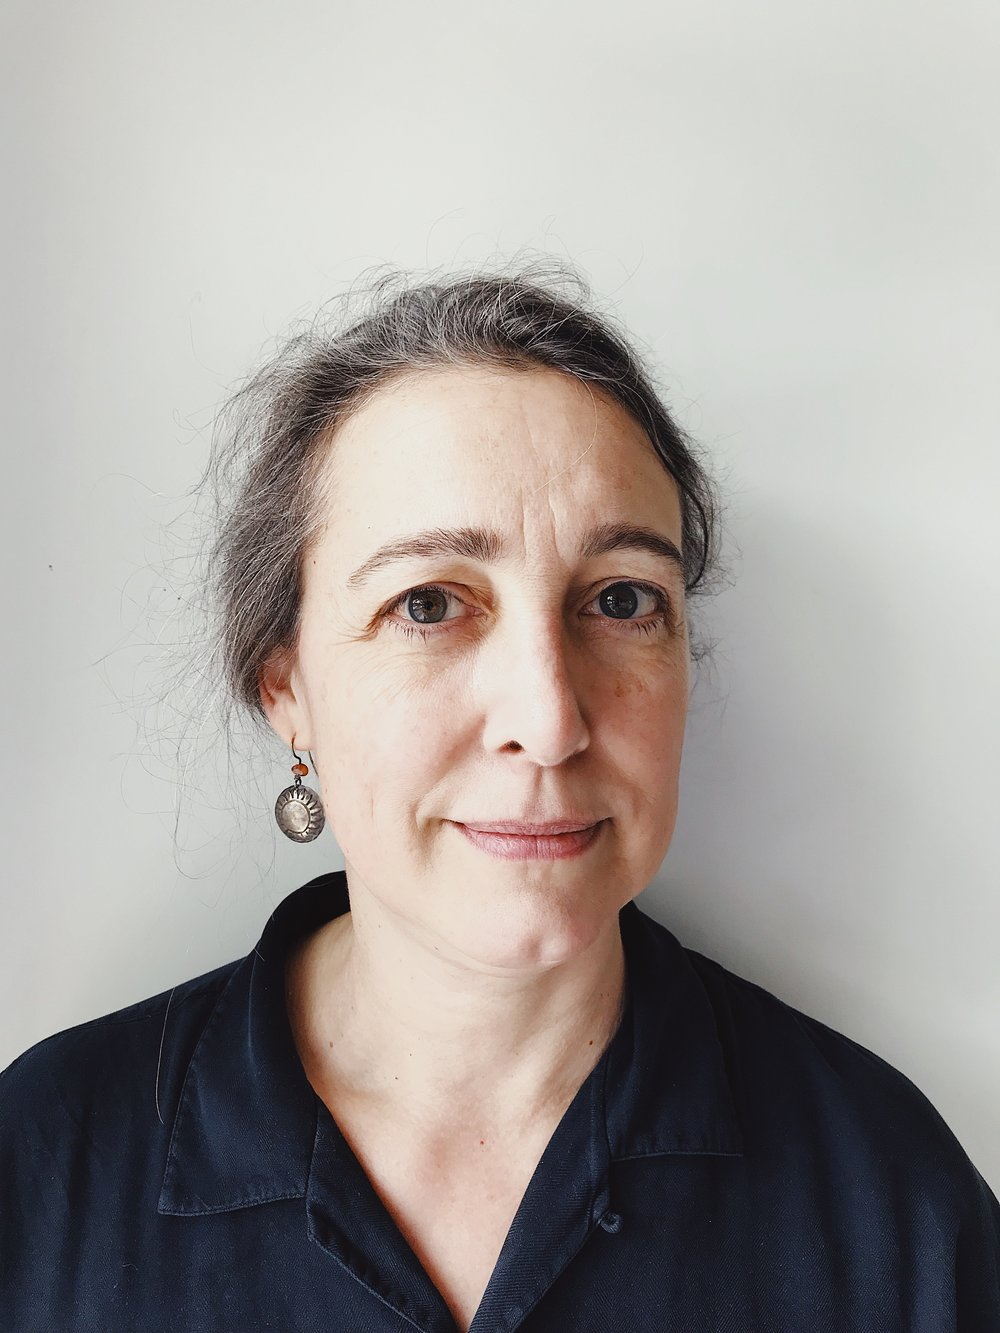 ANN FASANO - ANN FASANO has been doing hands-on explorations in art, science and play with young people since 2002. Her professional mediums include drawing, printmaking, sculpture, outsider art. She is now lead after-school enrichment teacher at The Bush School in Seattle.